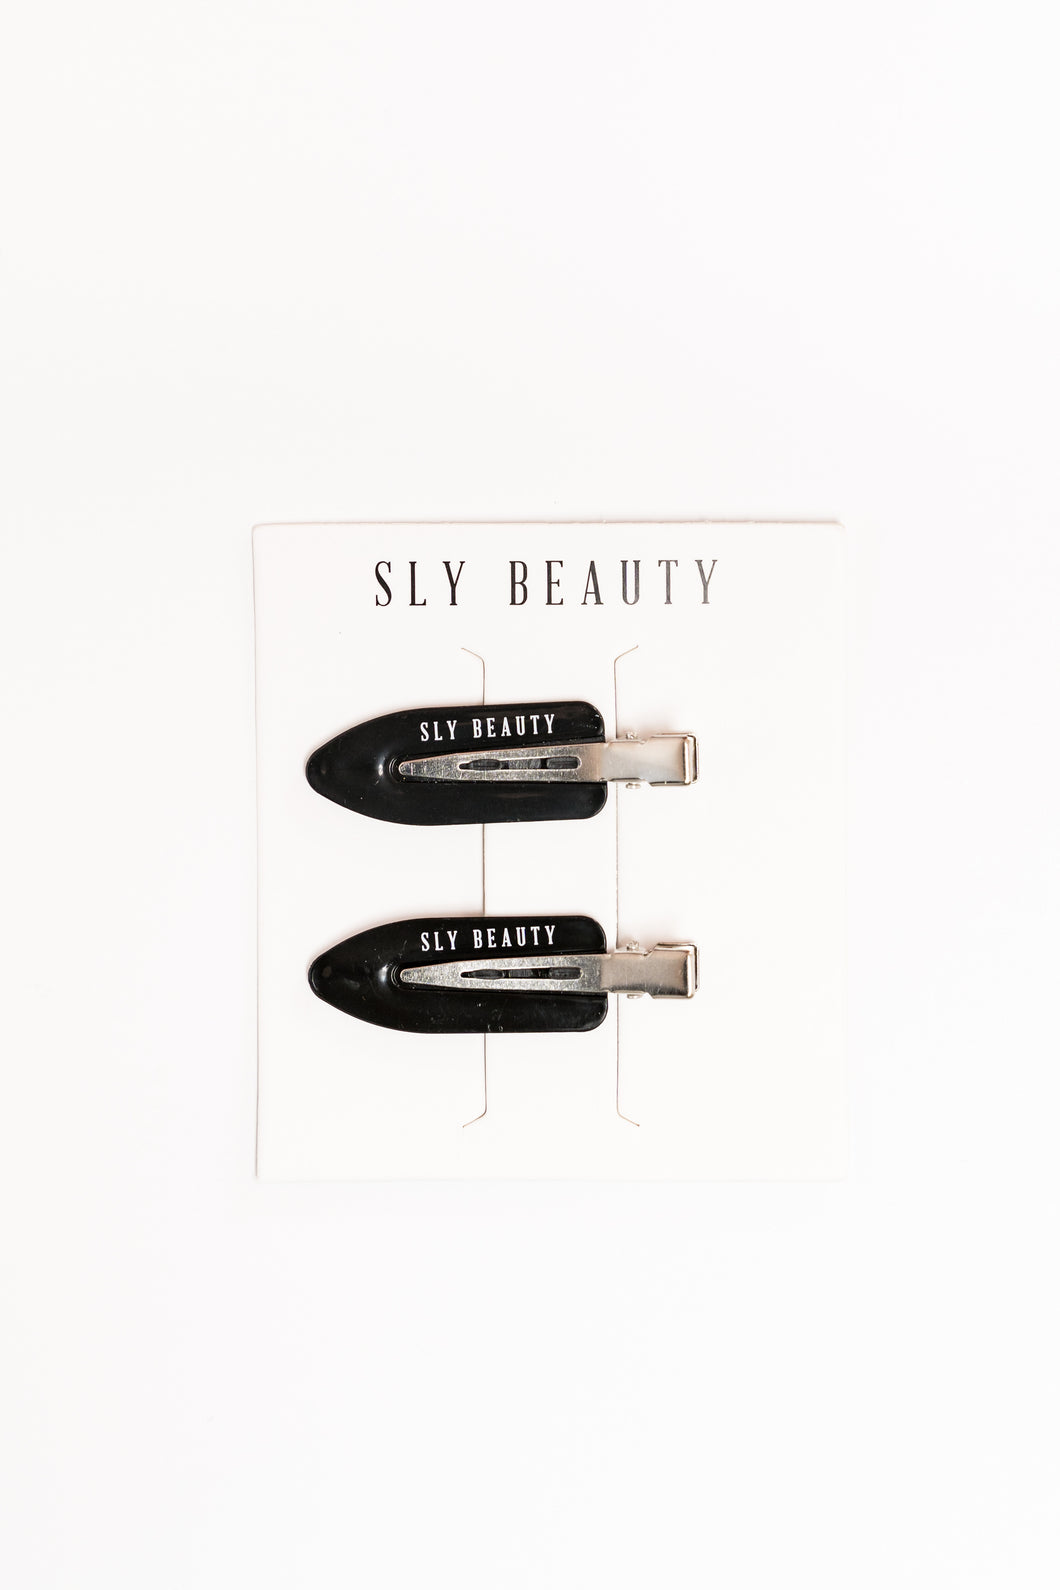 FREE SLY BEAUTY HAIR CLIPS WITH PURCHASE